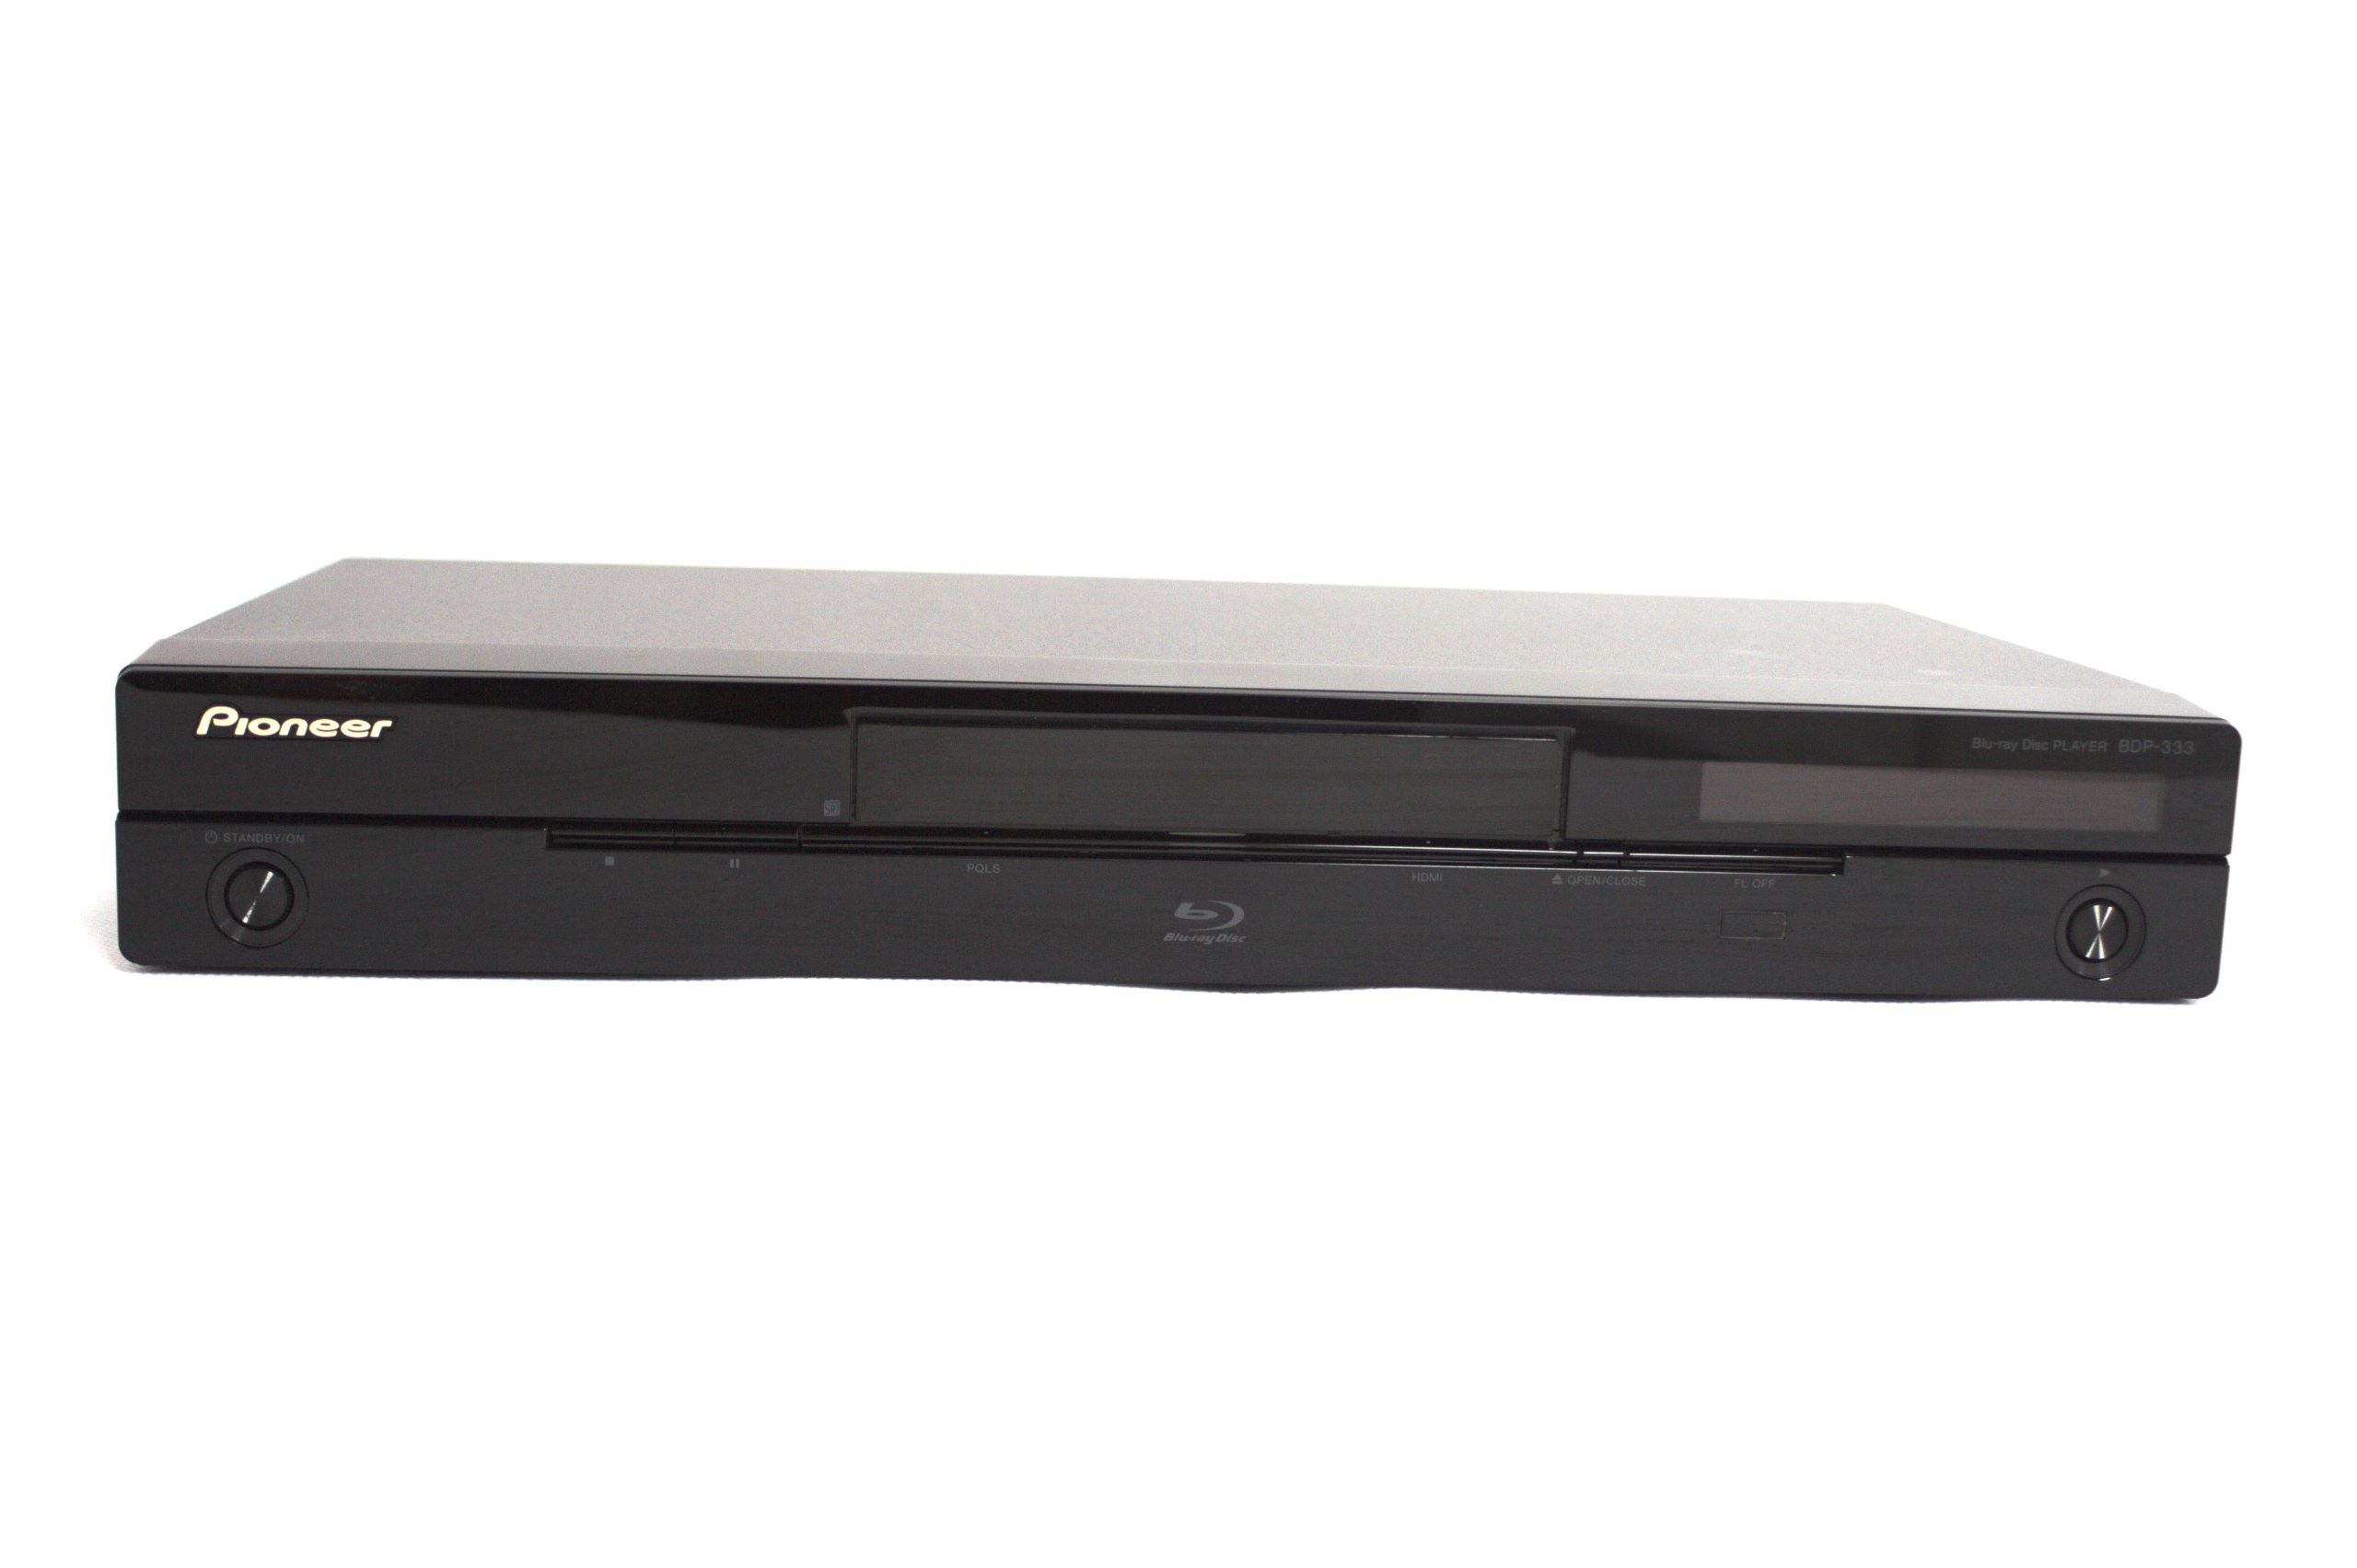 PIONEER BDP-333 BLU-RAY DISC PLAYER WINDOWS 8 X64 DRIVER